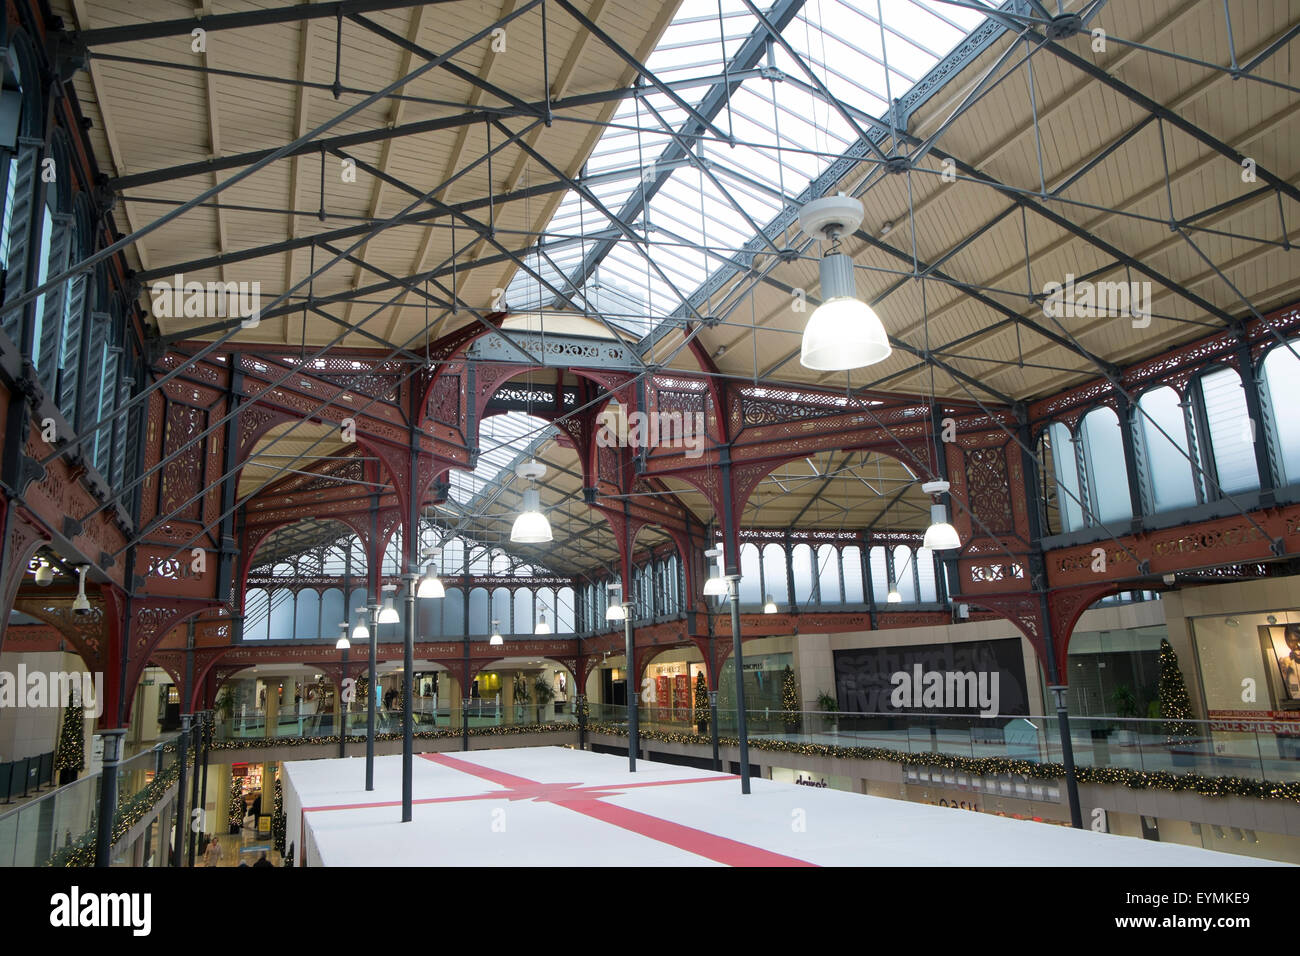 Market hall in the lancashire town of Bolton is a shopping mall , it was orginally opened in 1855, lancashire,england - Stock Image